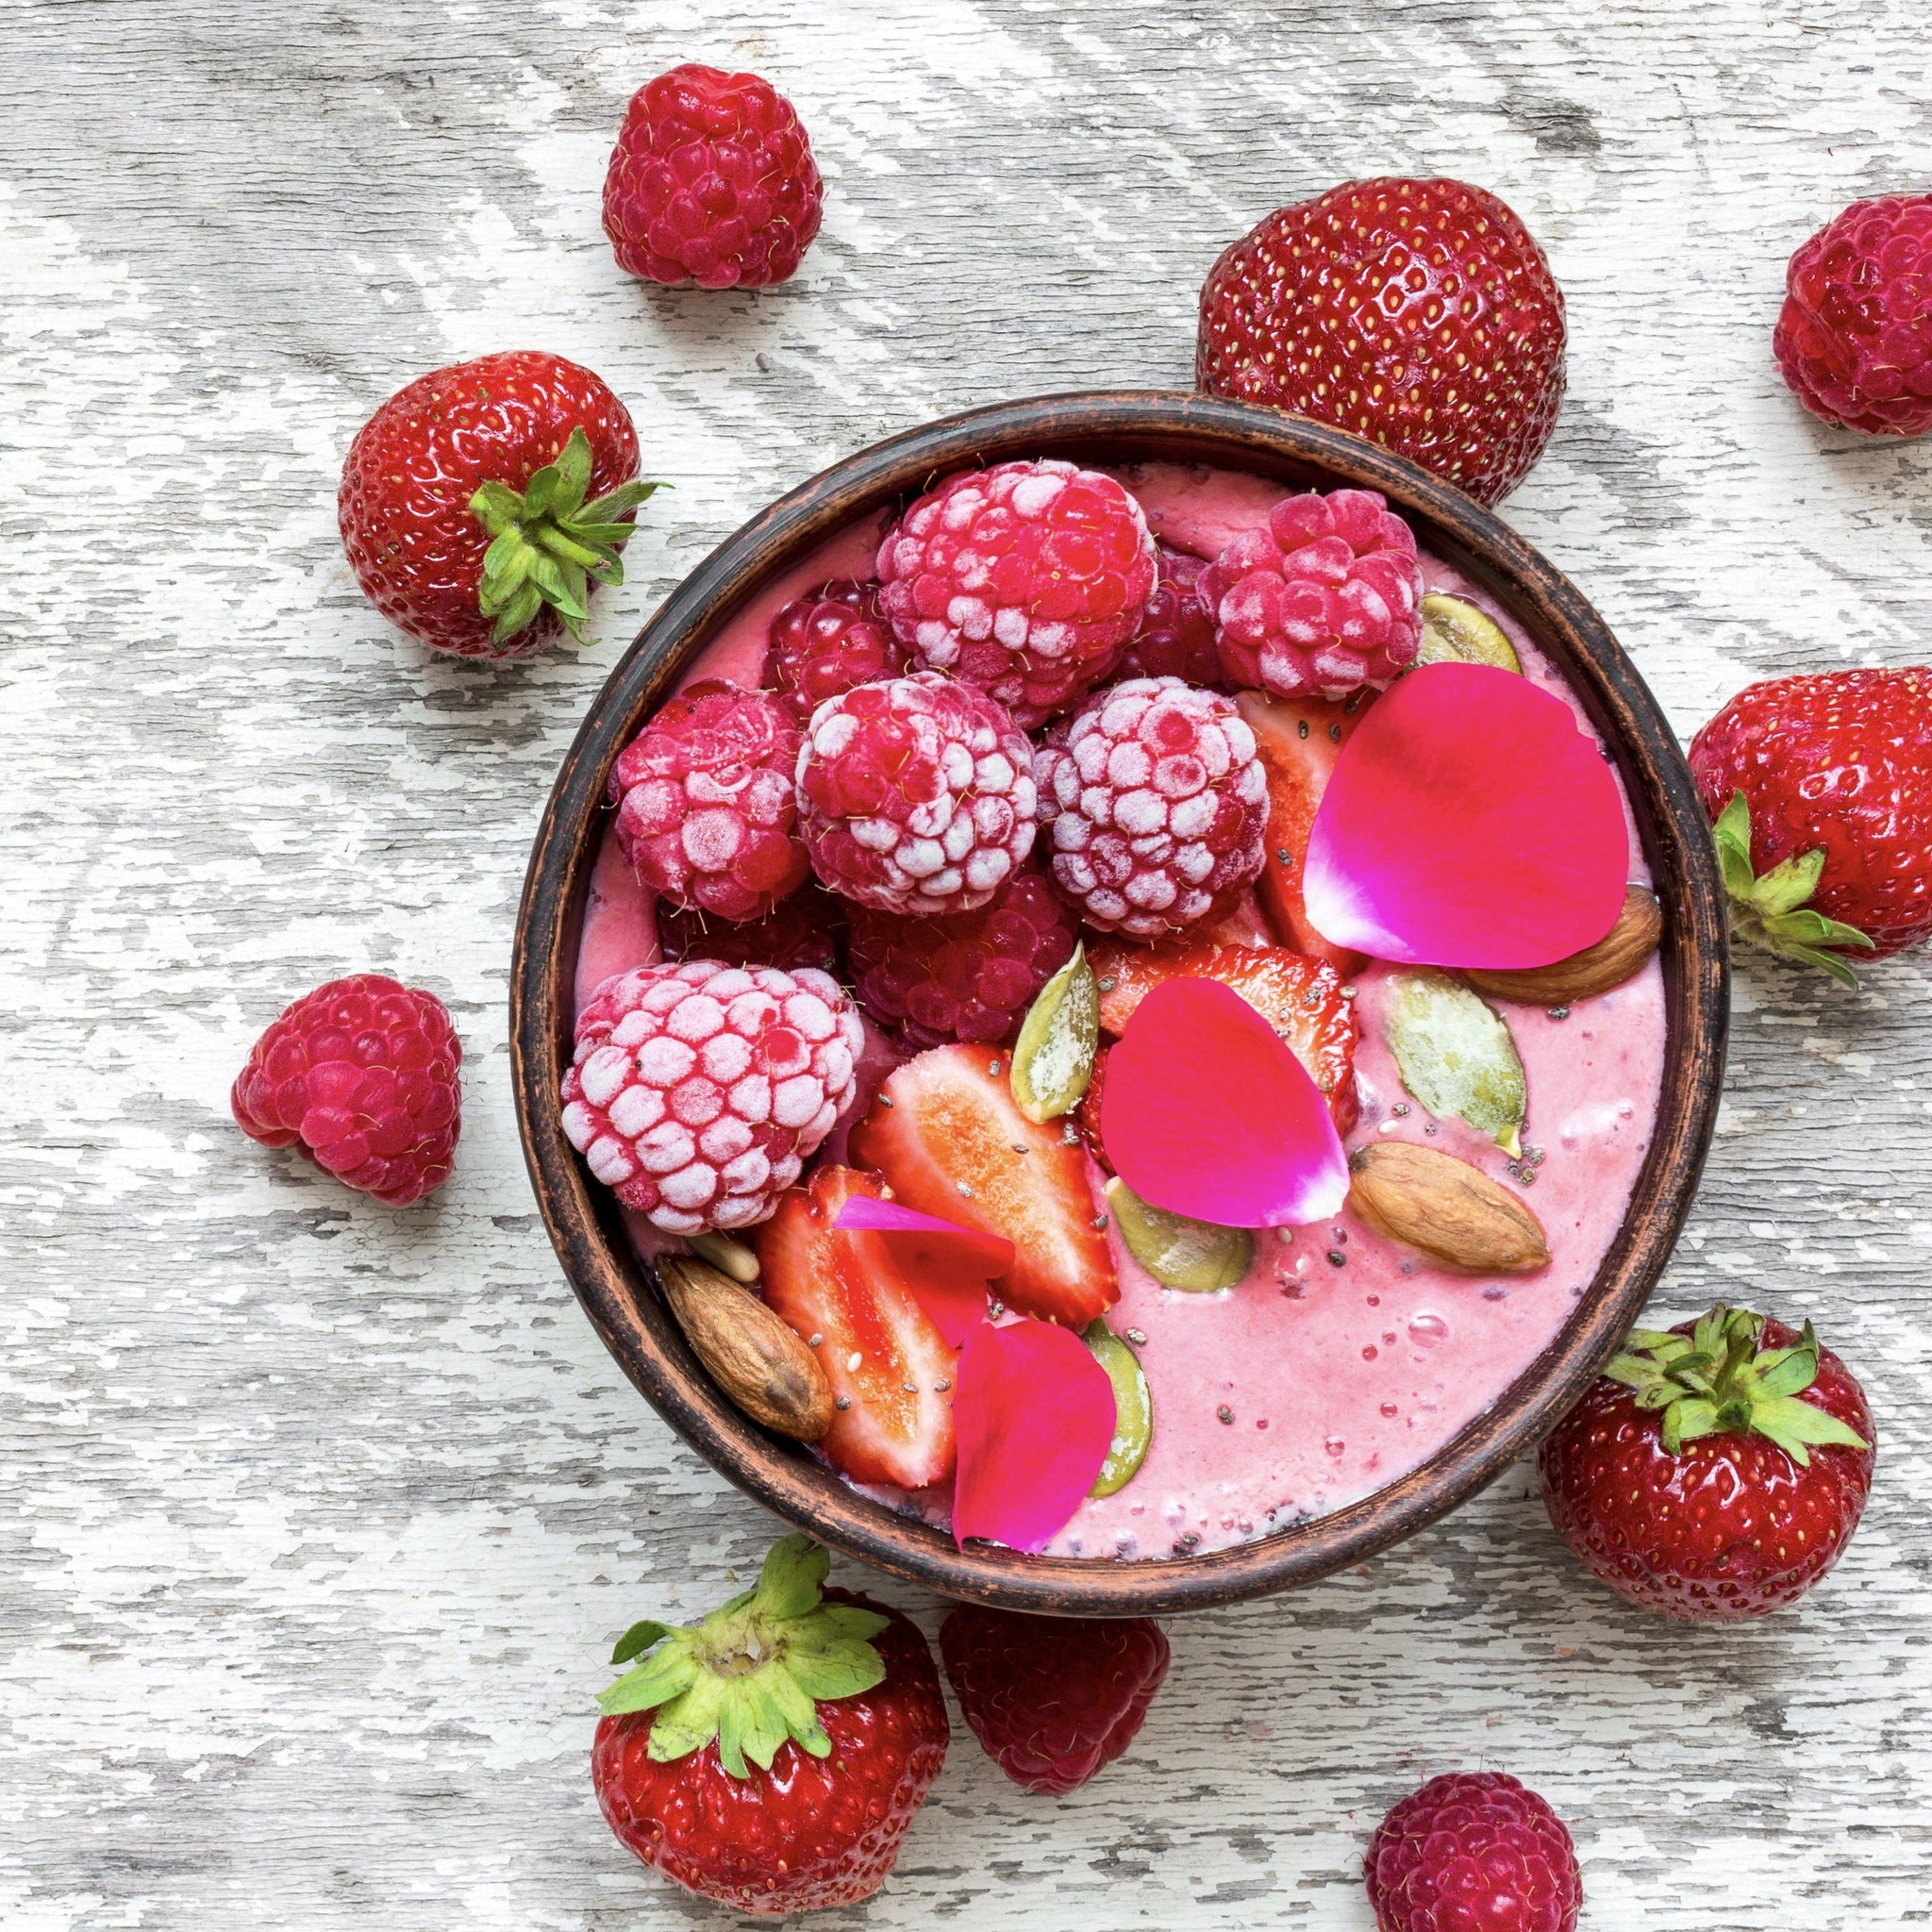 Strawberry Rose Yogurt Bowl